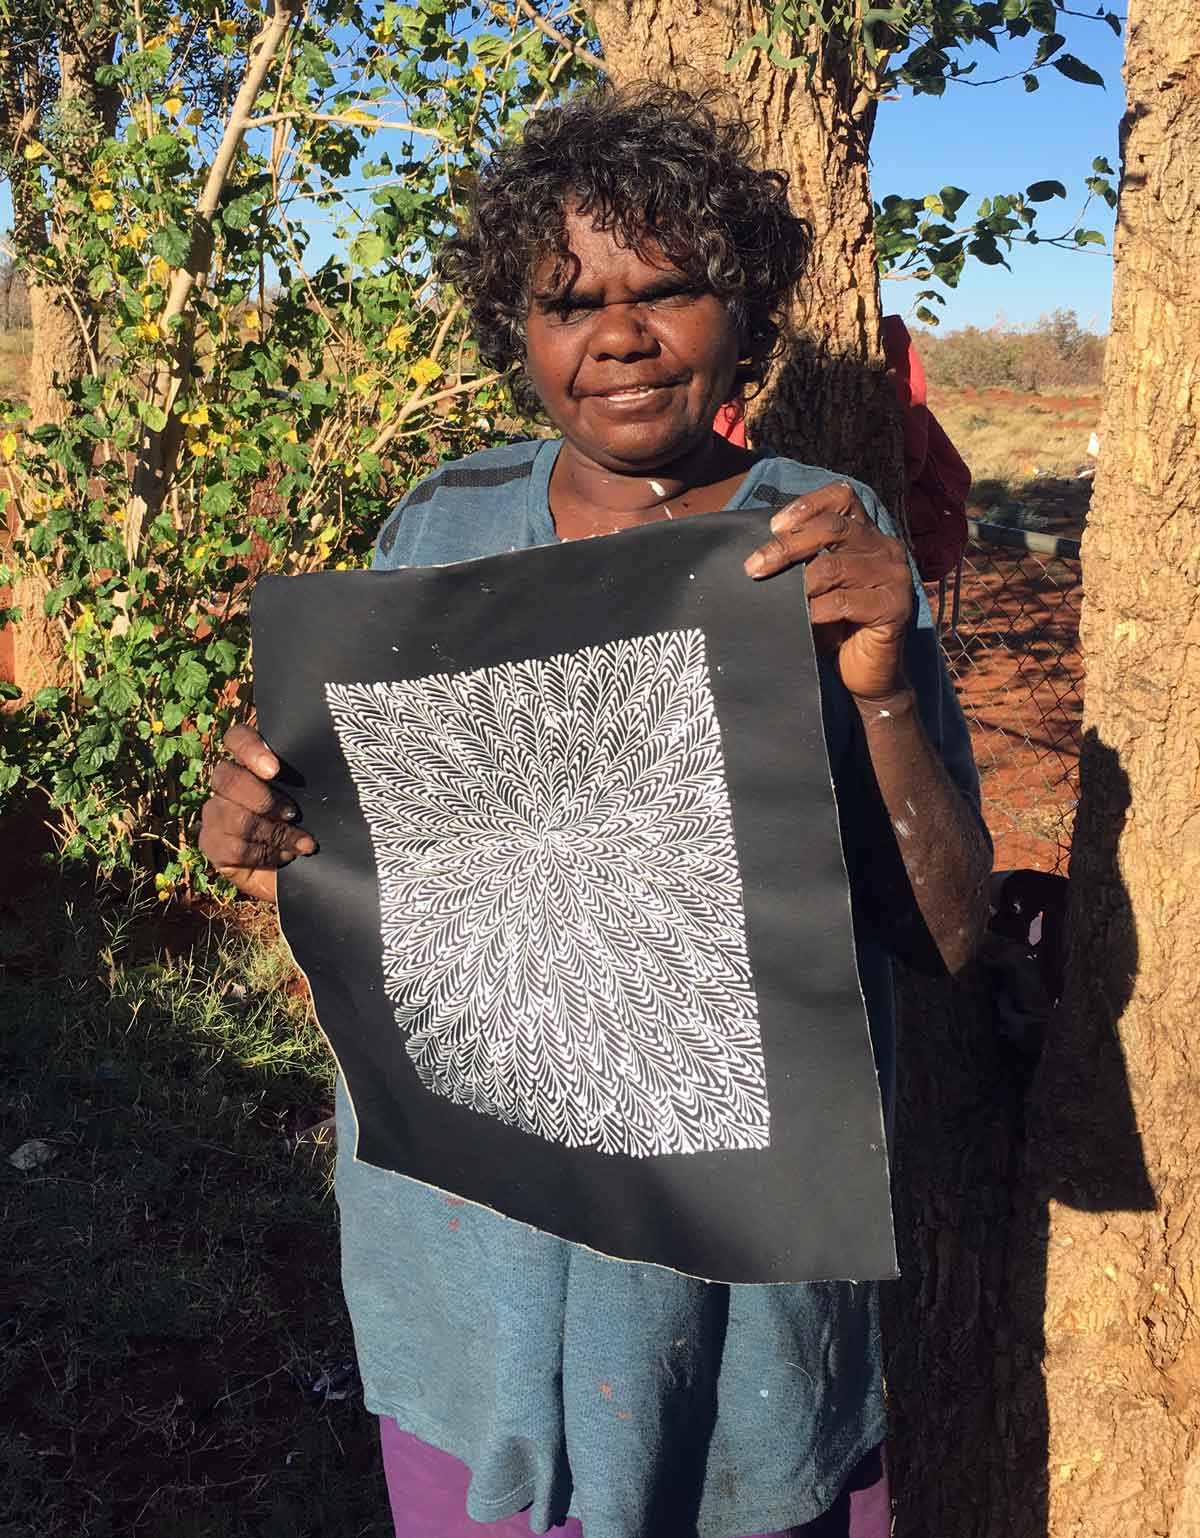 Bush Medicine (Ilpengk) by Dorrie Jones